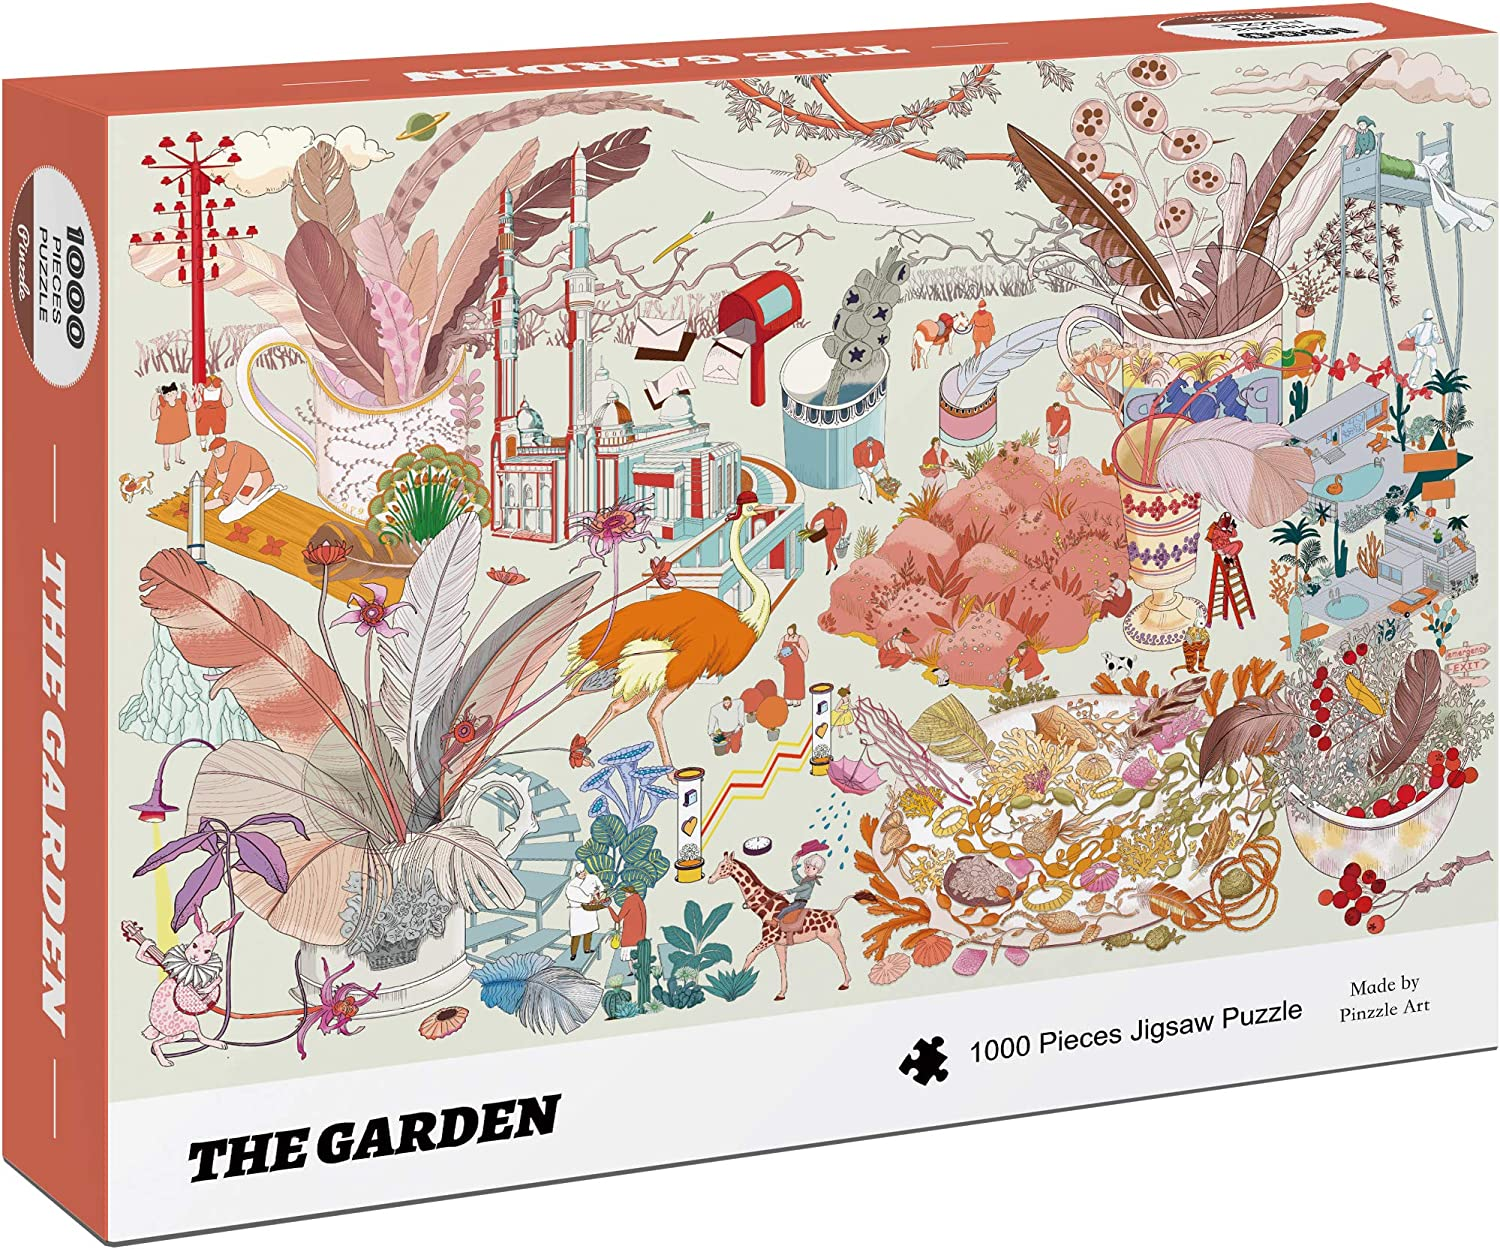 Pinzzle Art - The Garden 1000 Pieces Premium Jigsaw Puzzles, Large Size Difficult Plant Puzzles (70 x 50) for Adult …